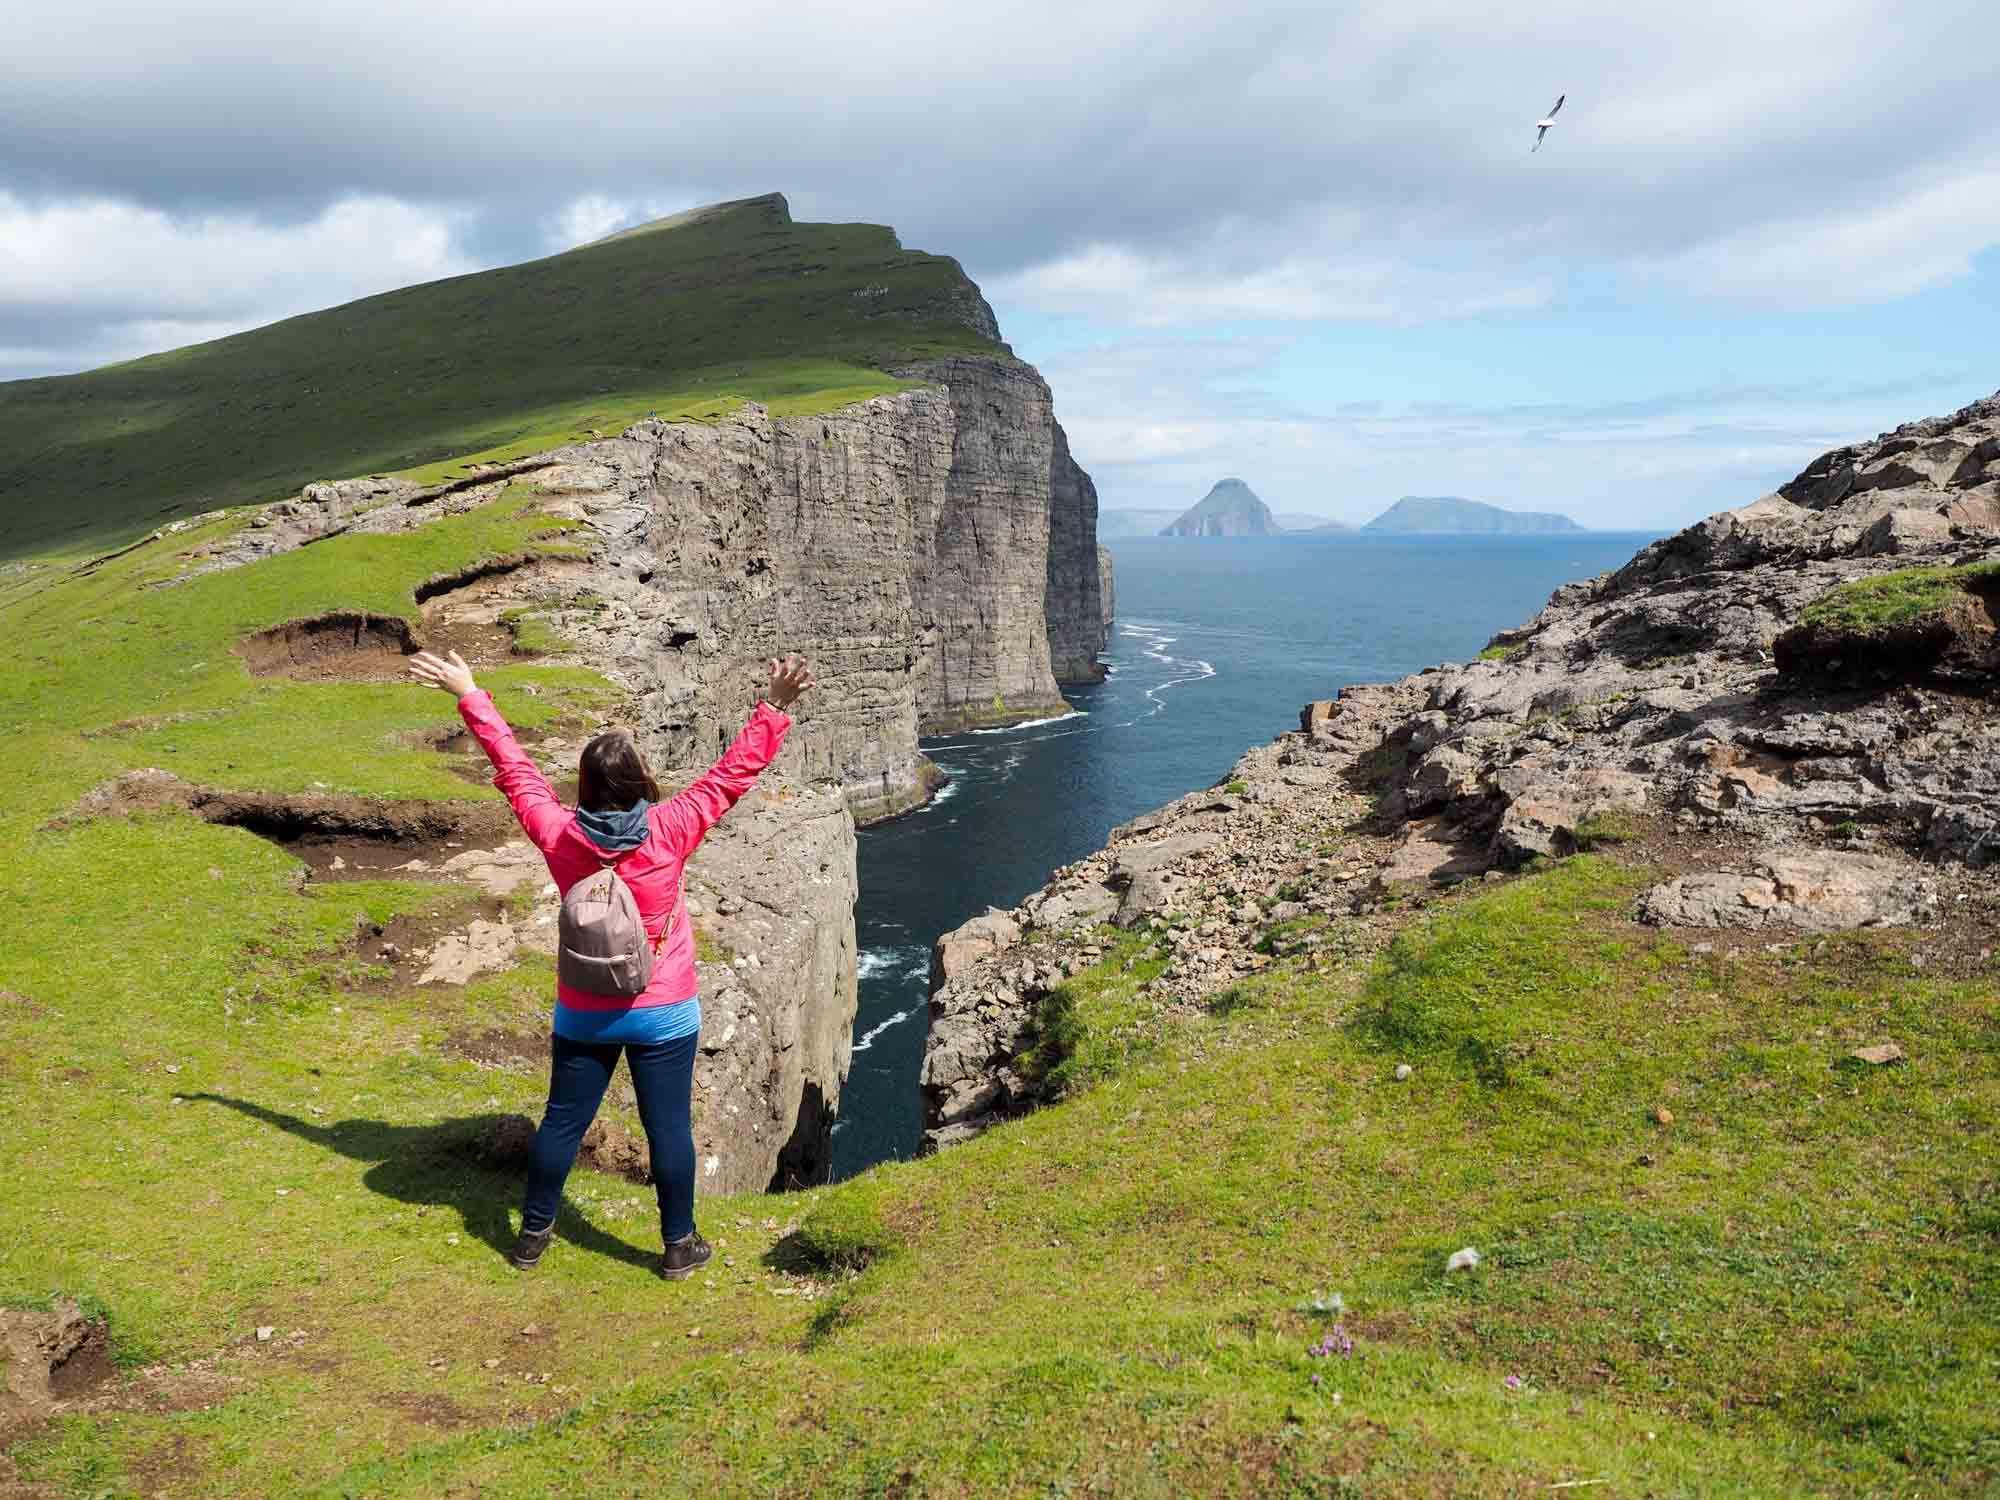 Amanda and Pacsafe in the Faroe Islands